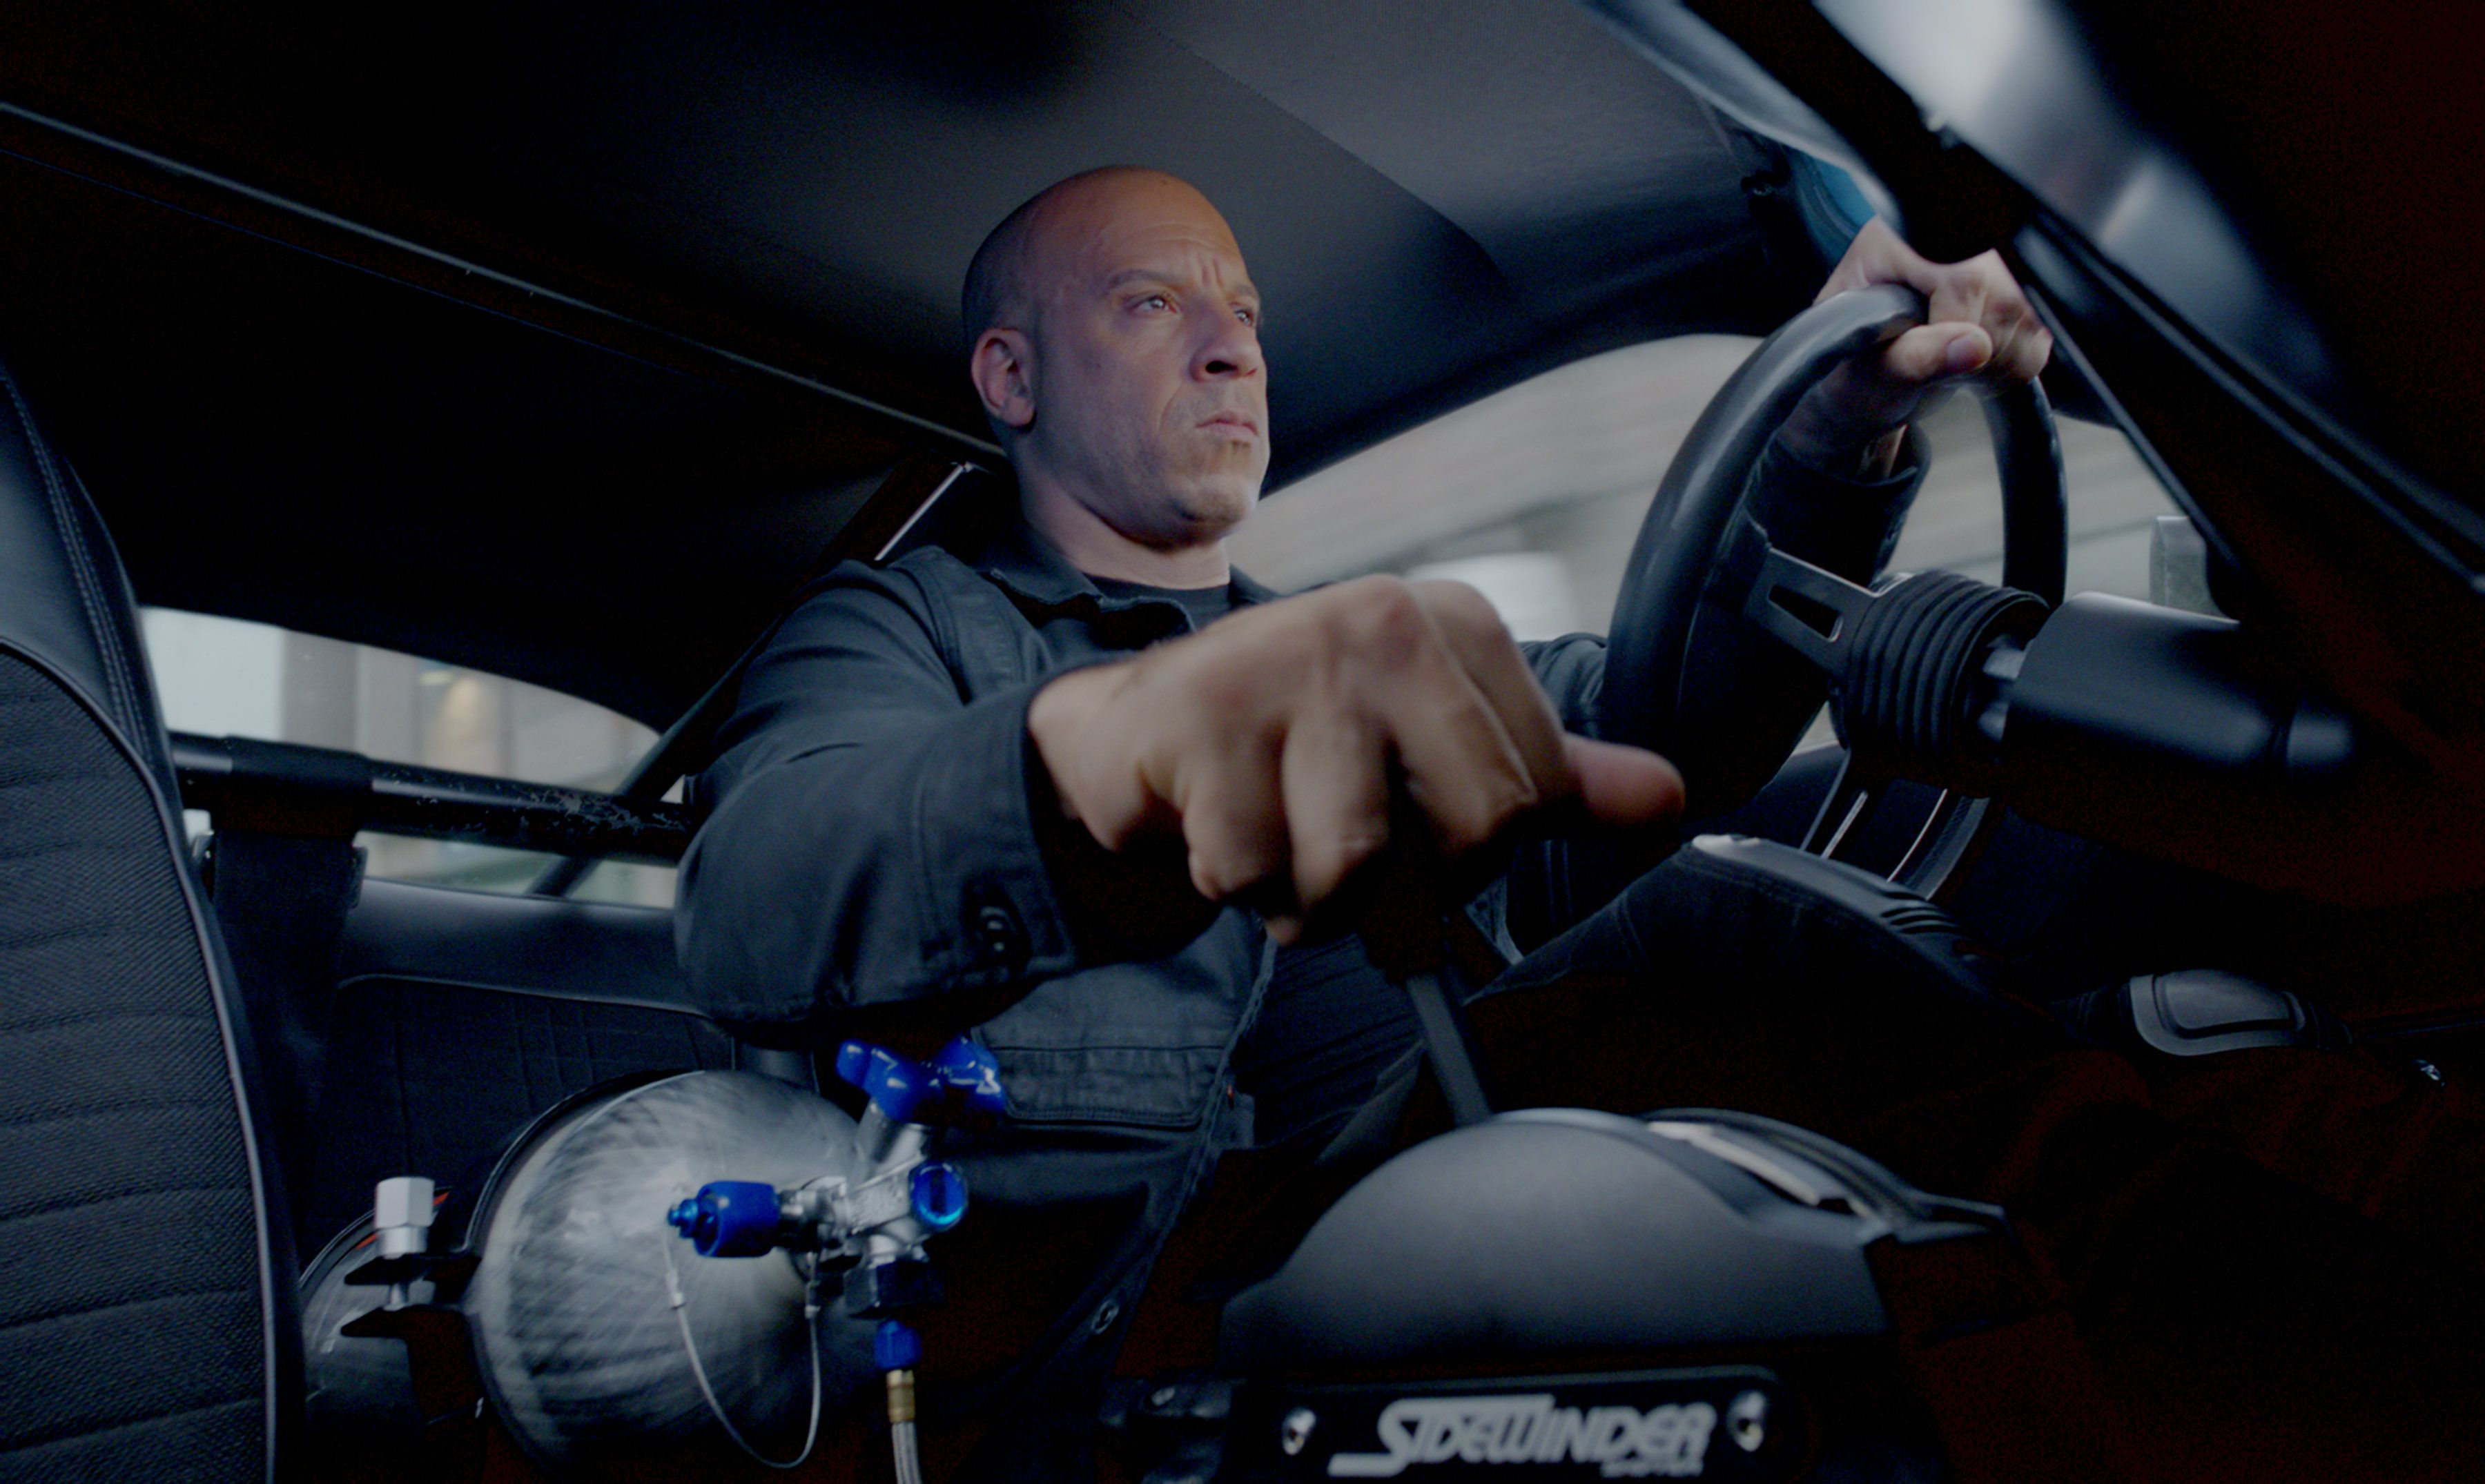 Vin Diesel will star in the Fast & Furious Live arena tour